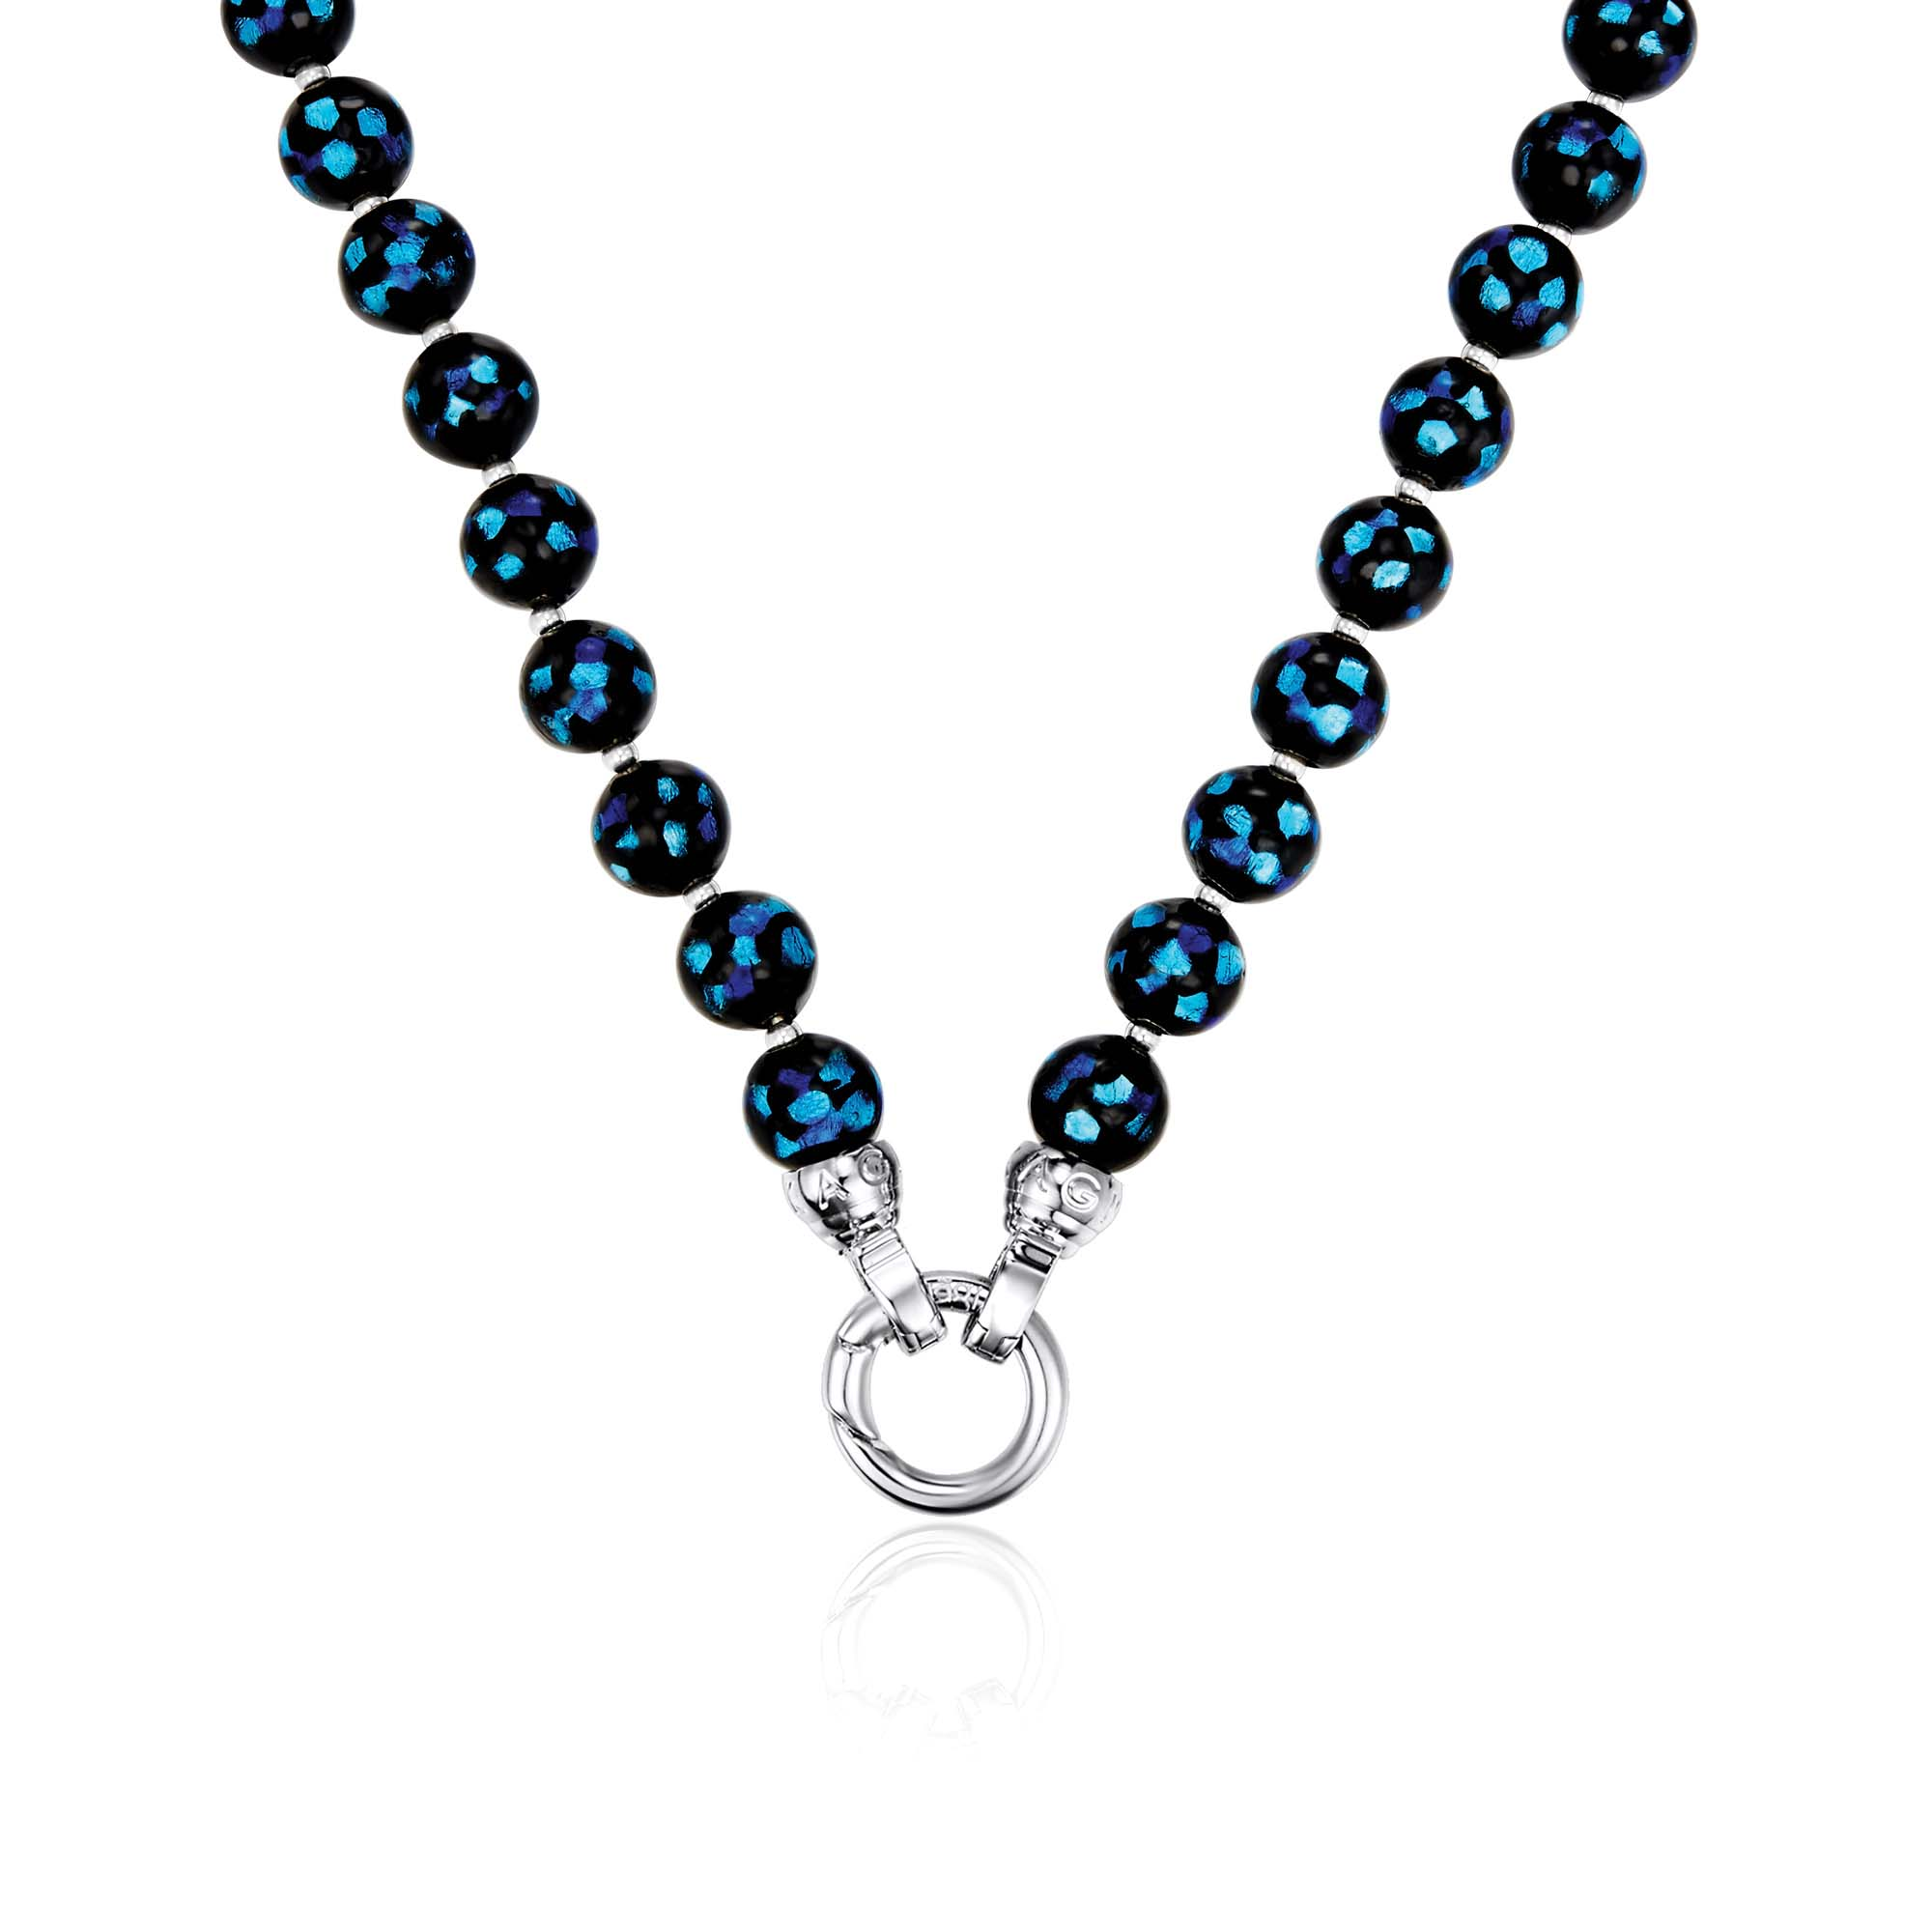 Kagi Blue Danube Necklace 49cm $229 www.kagi.net